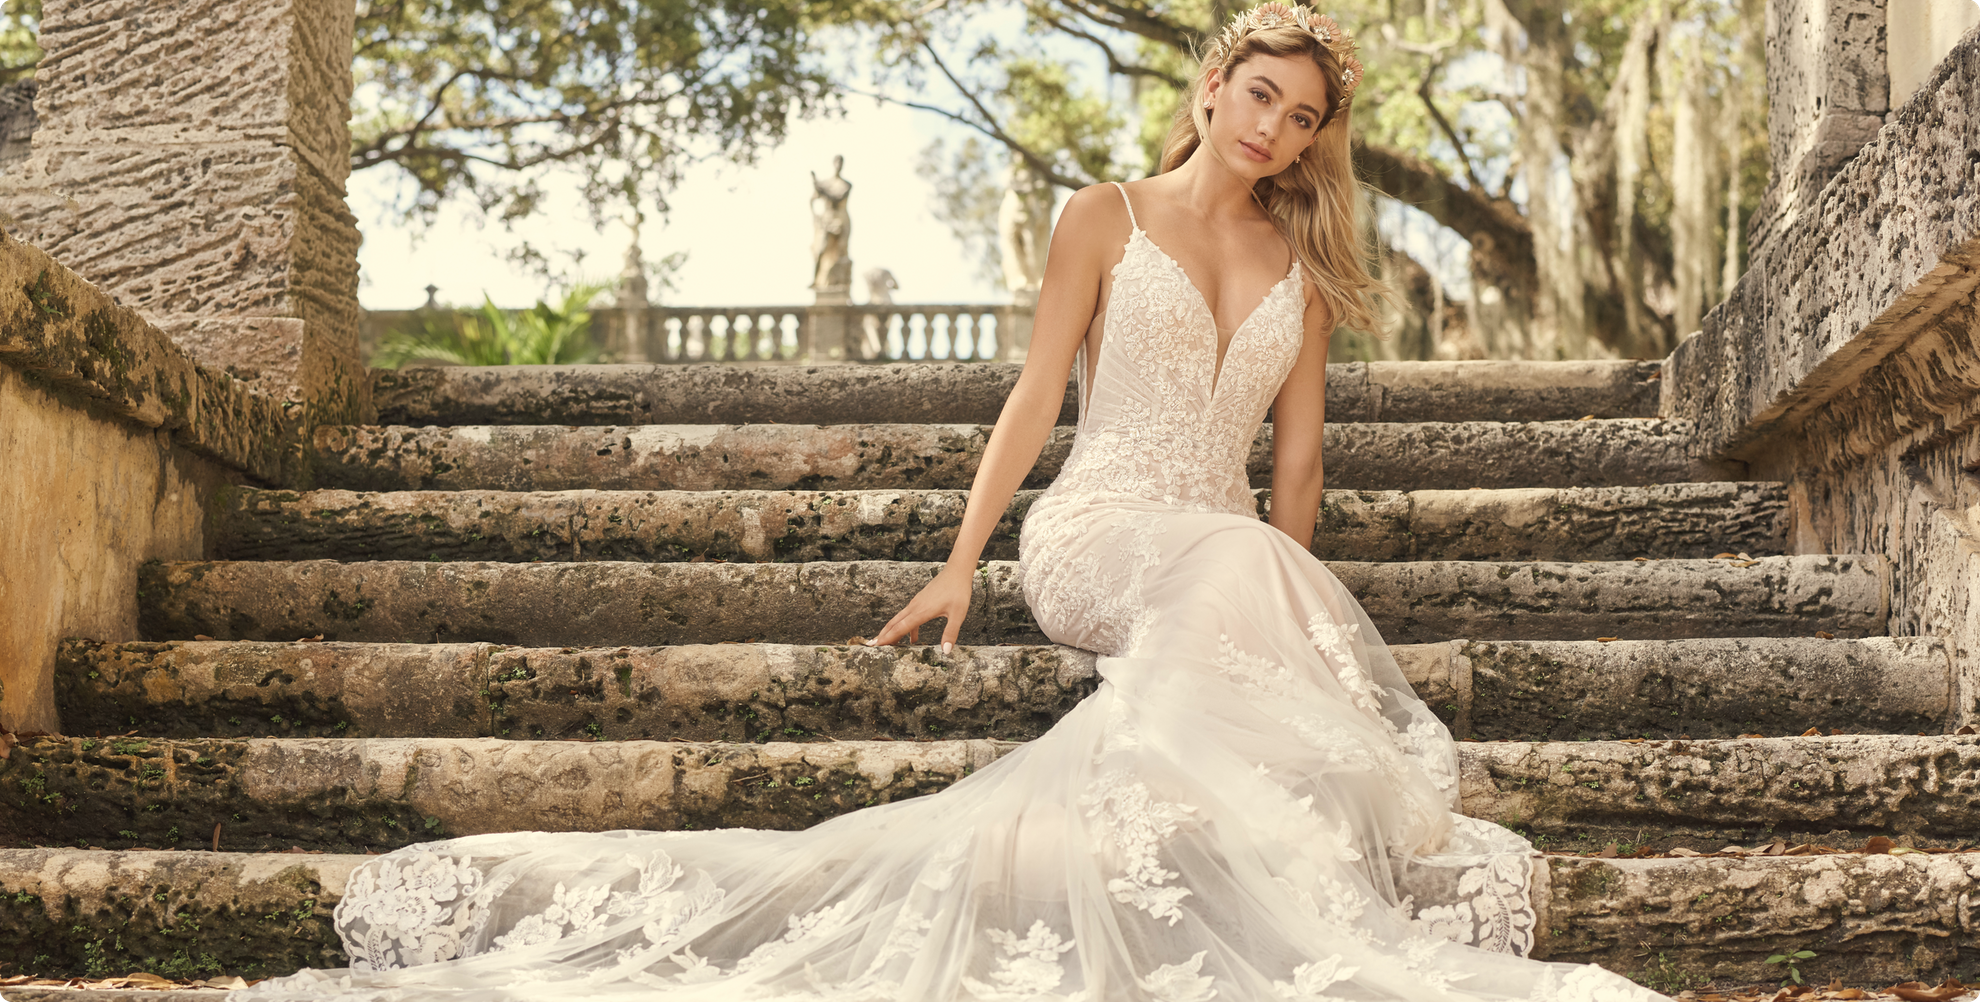 Fontaine Wedding dress by Maggie Sottero